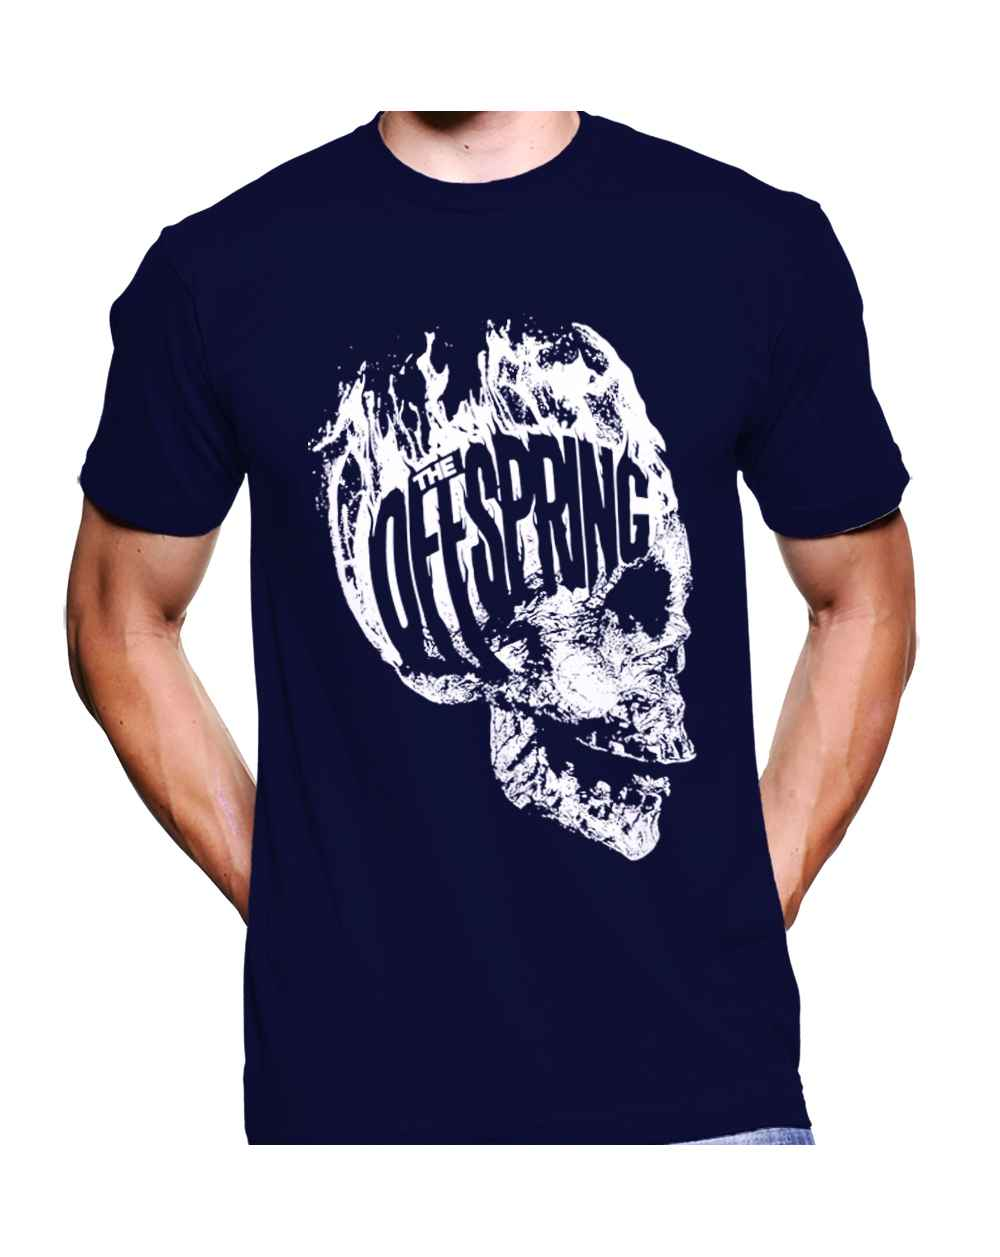 Camiseta Estampada Hombre The Offspring 02